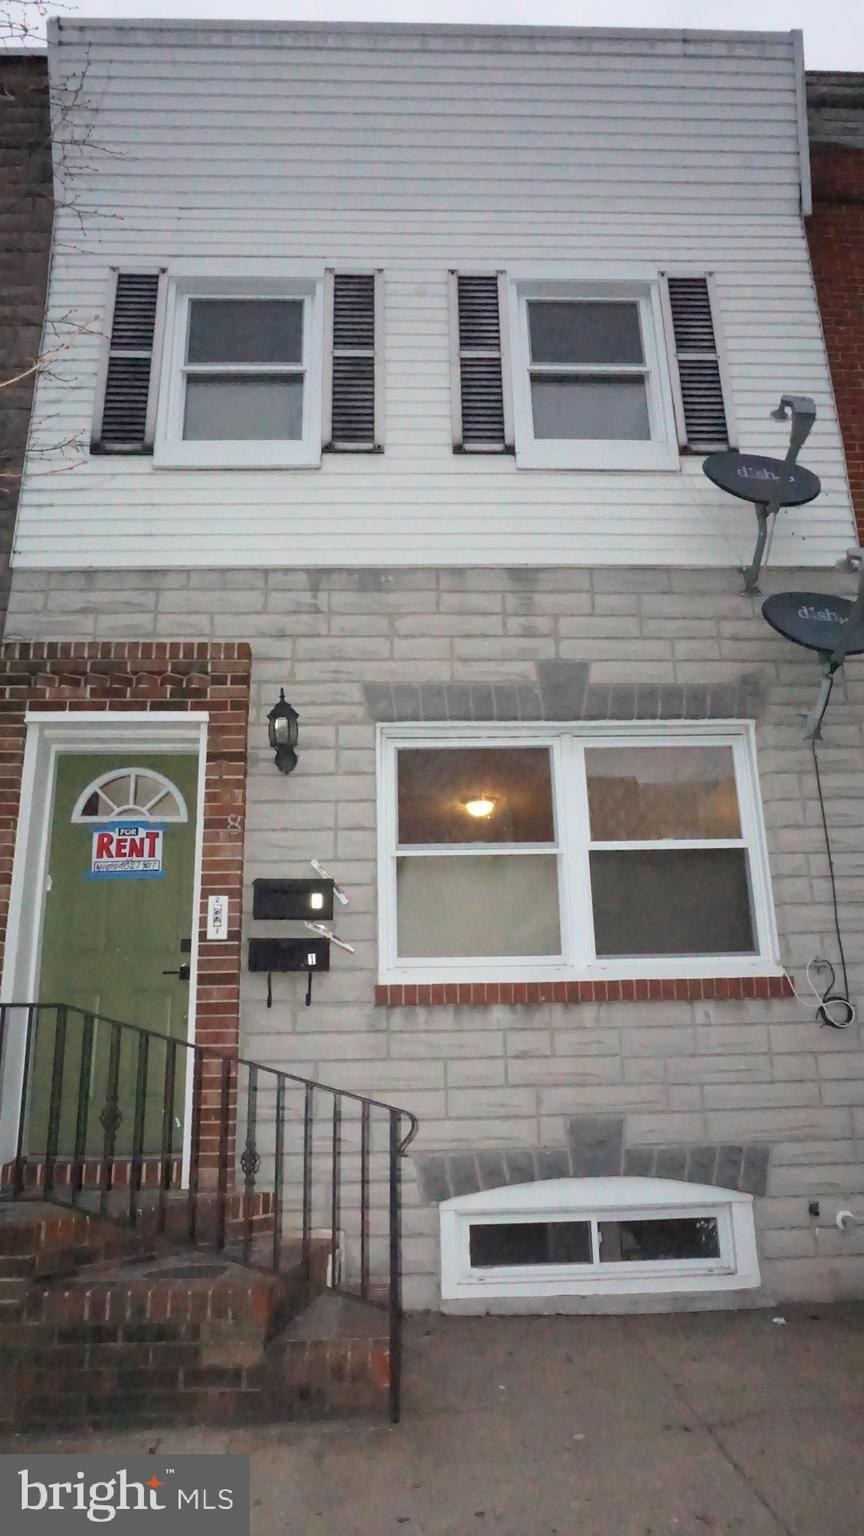 This beautiful 2 unit home was completely rebuilt just 6 years ago and is conveniently located a few